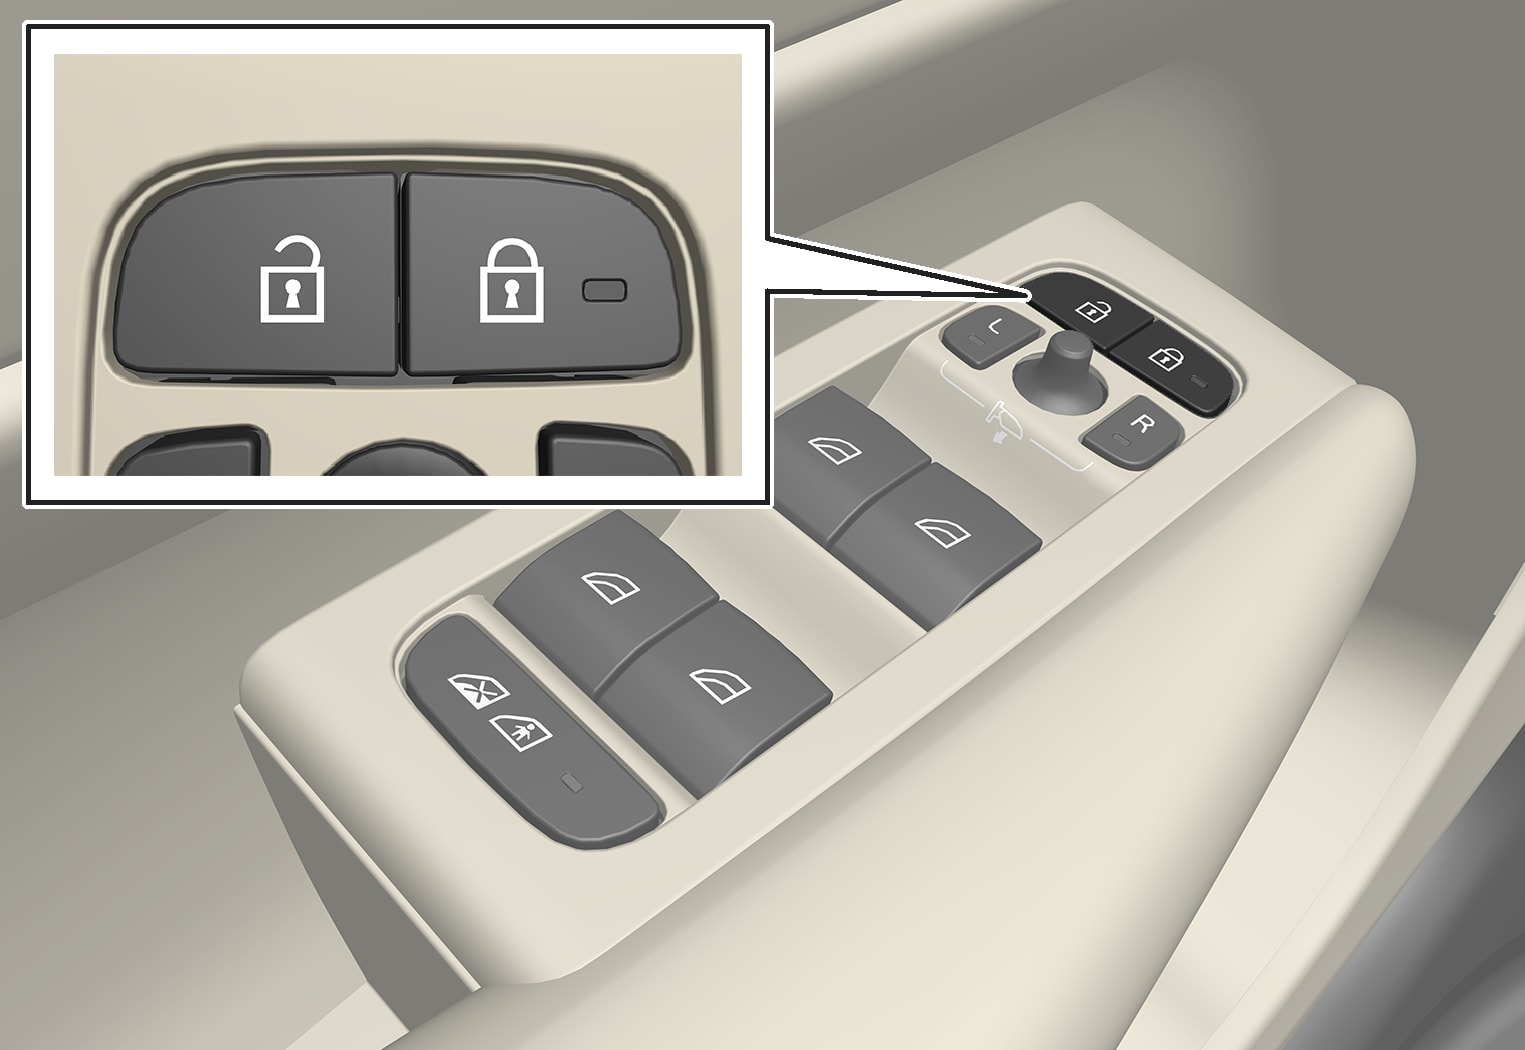 P6-1746-XC40-Central locking buttons front door